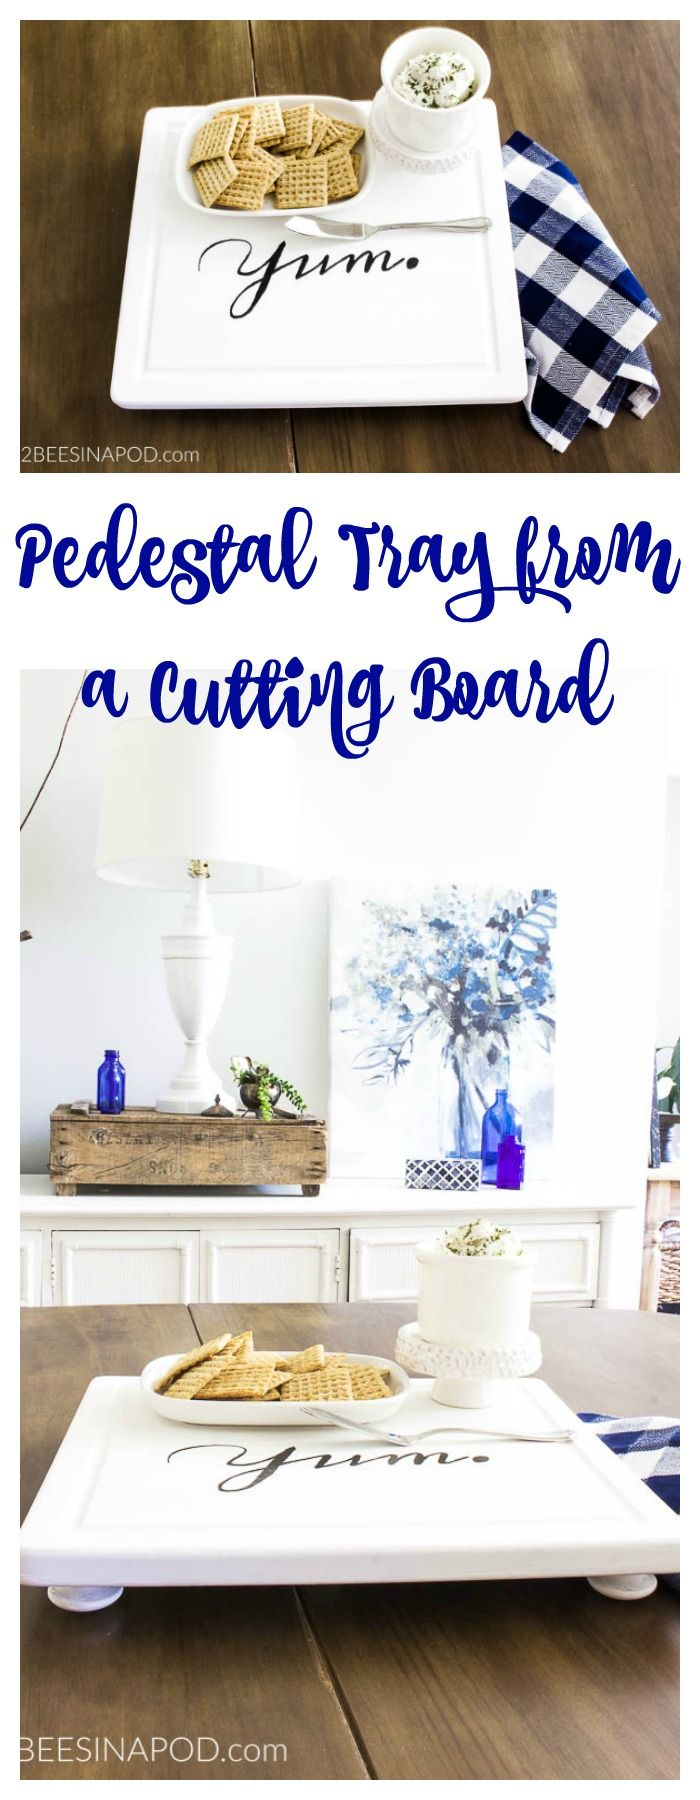 Easy DIY Pedestal Tray From a Cutting Board. Repurposed cutting board. Serving tray with graphics. Yum tray. DIY tray and board. Painted tray.